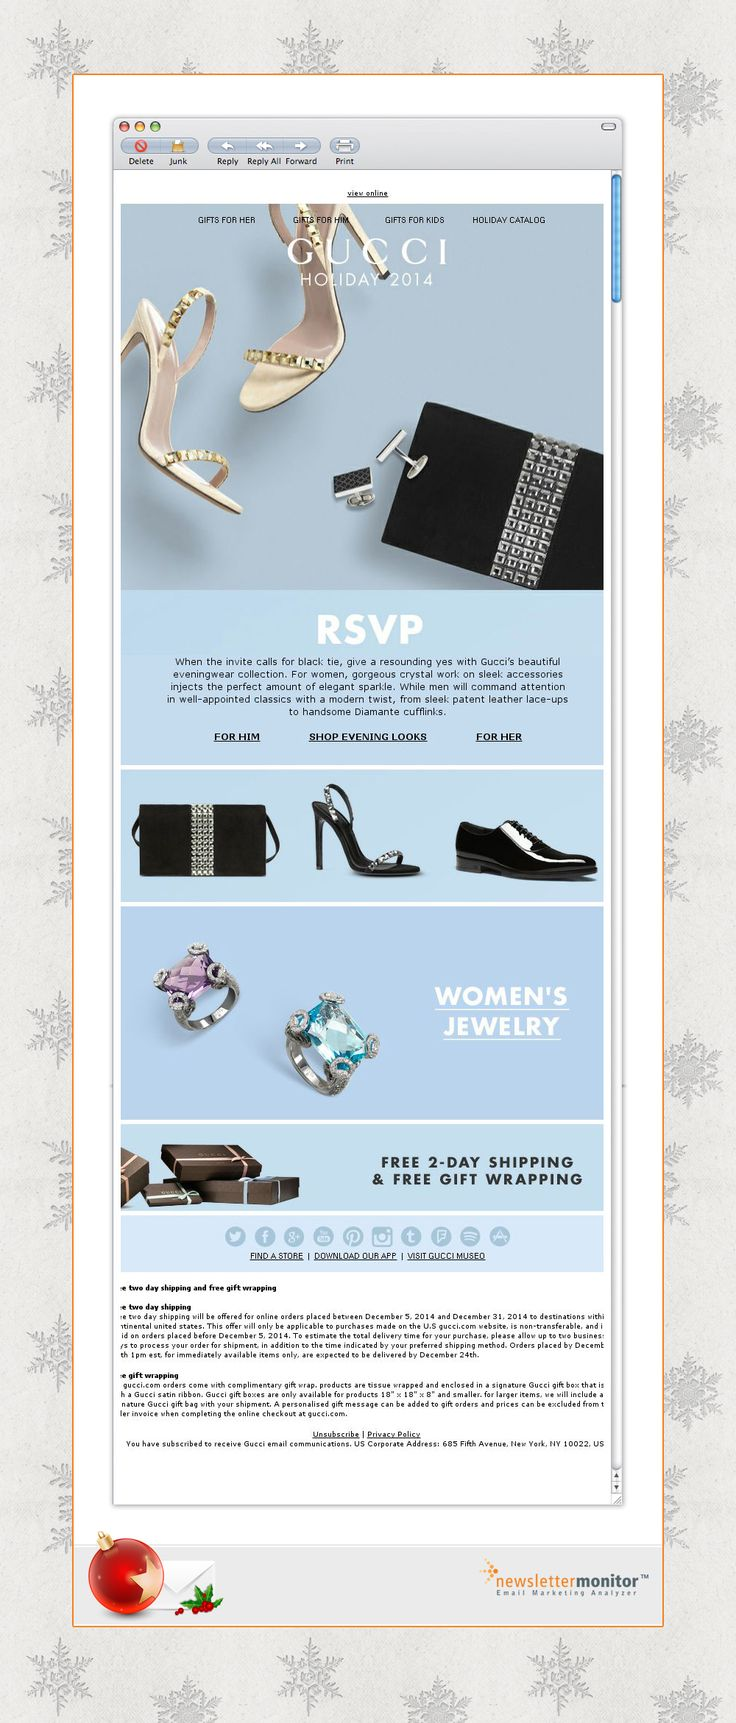 Best Black Friday Sale Images On Pinterest Black Friday Email - Making an invoice in word gucci outlet store online